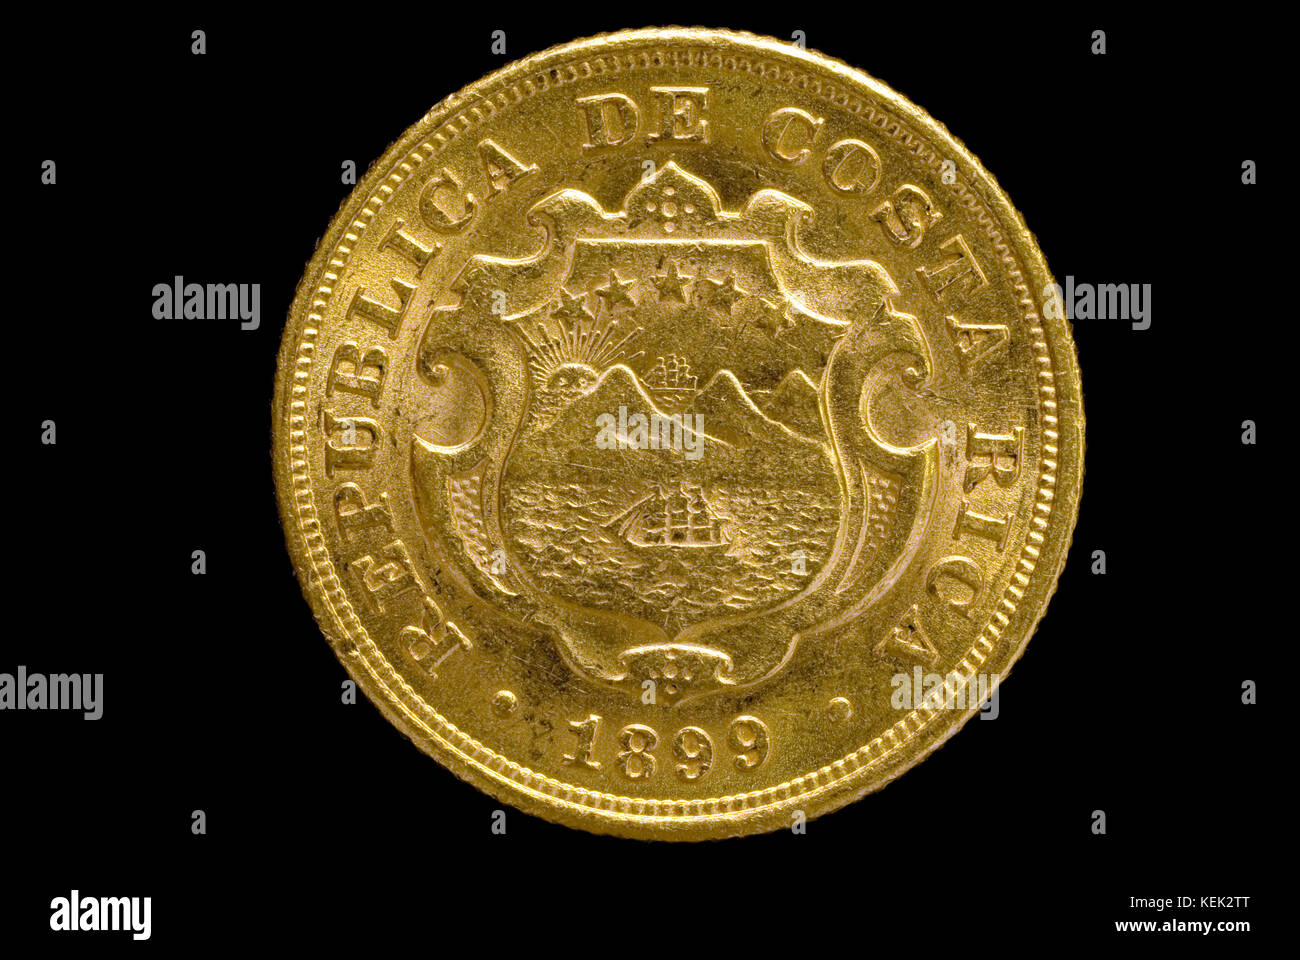 Gold Bullion Coin Stock Photos Amp Gold Bullion Coin Stock